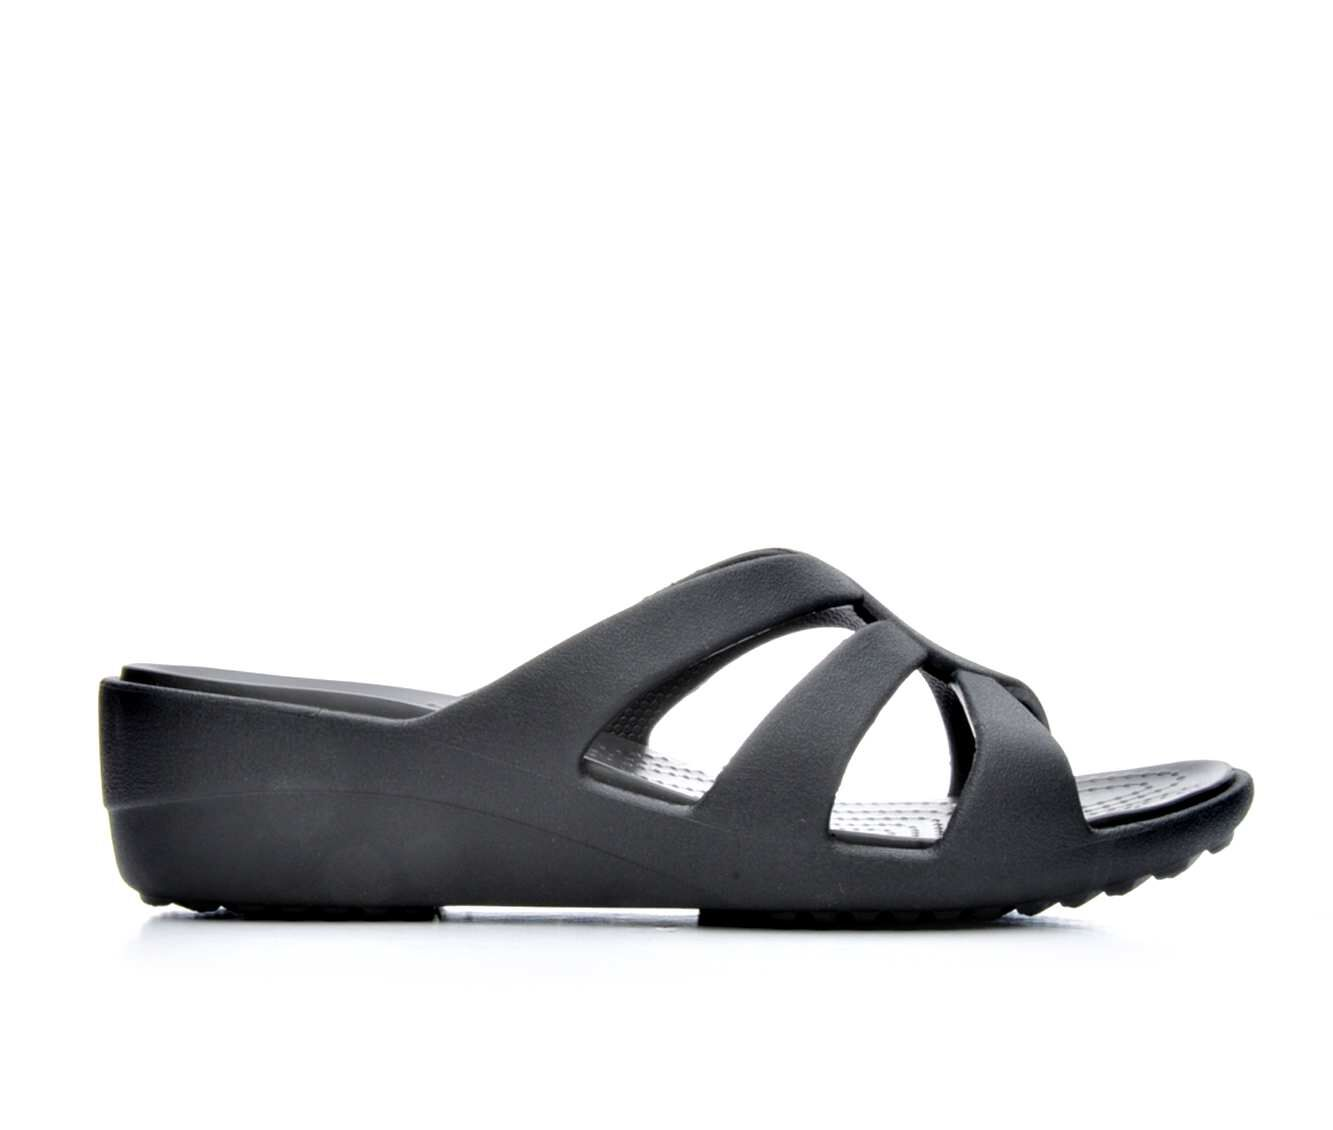 Women's Crocs Sanrah Strappy Wedge Sandals Black